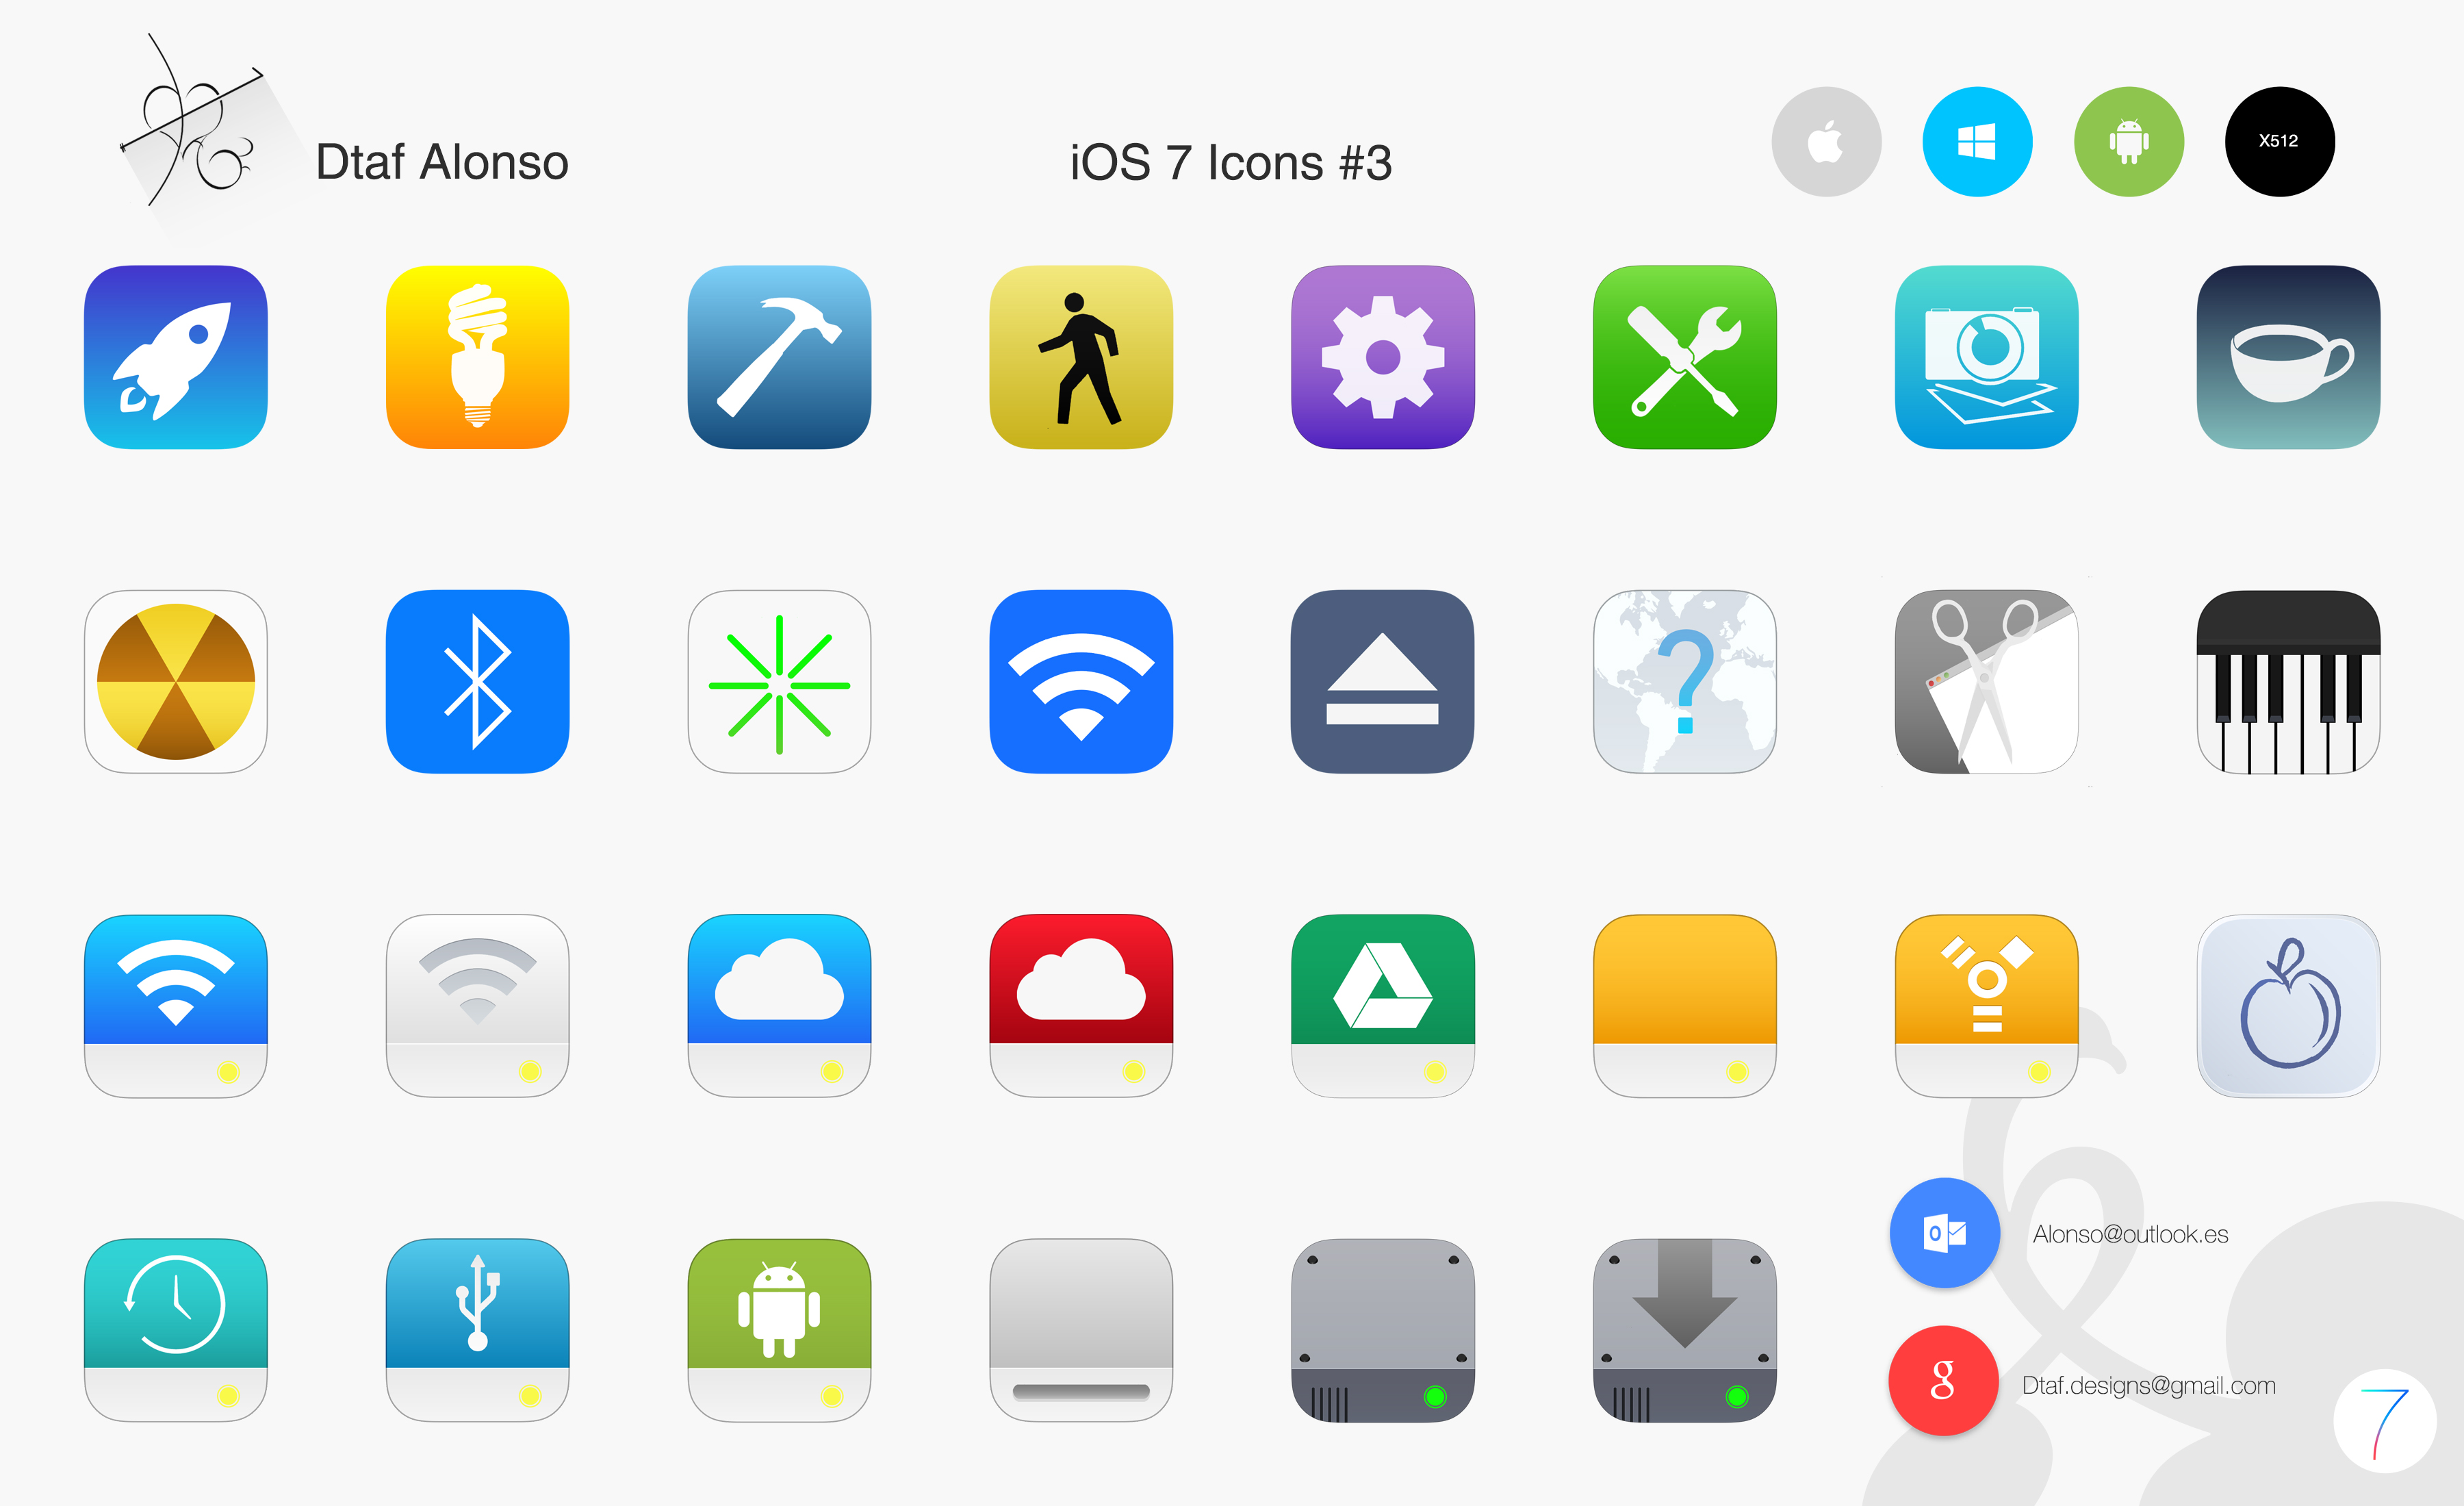 IOS 7 Icons May Change